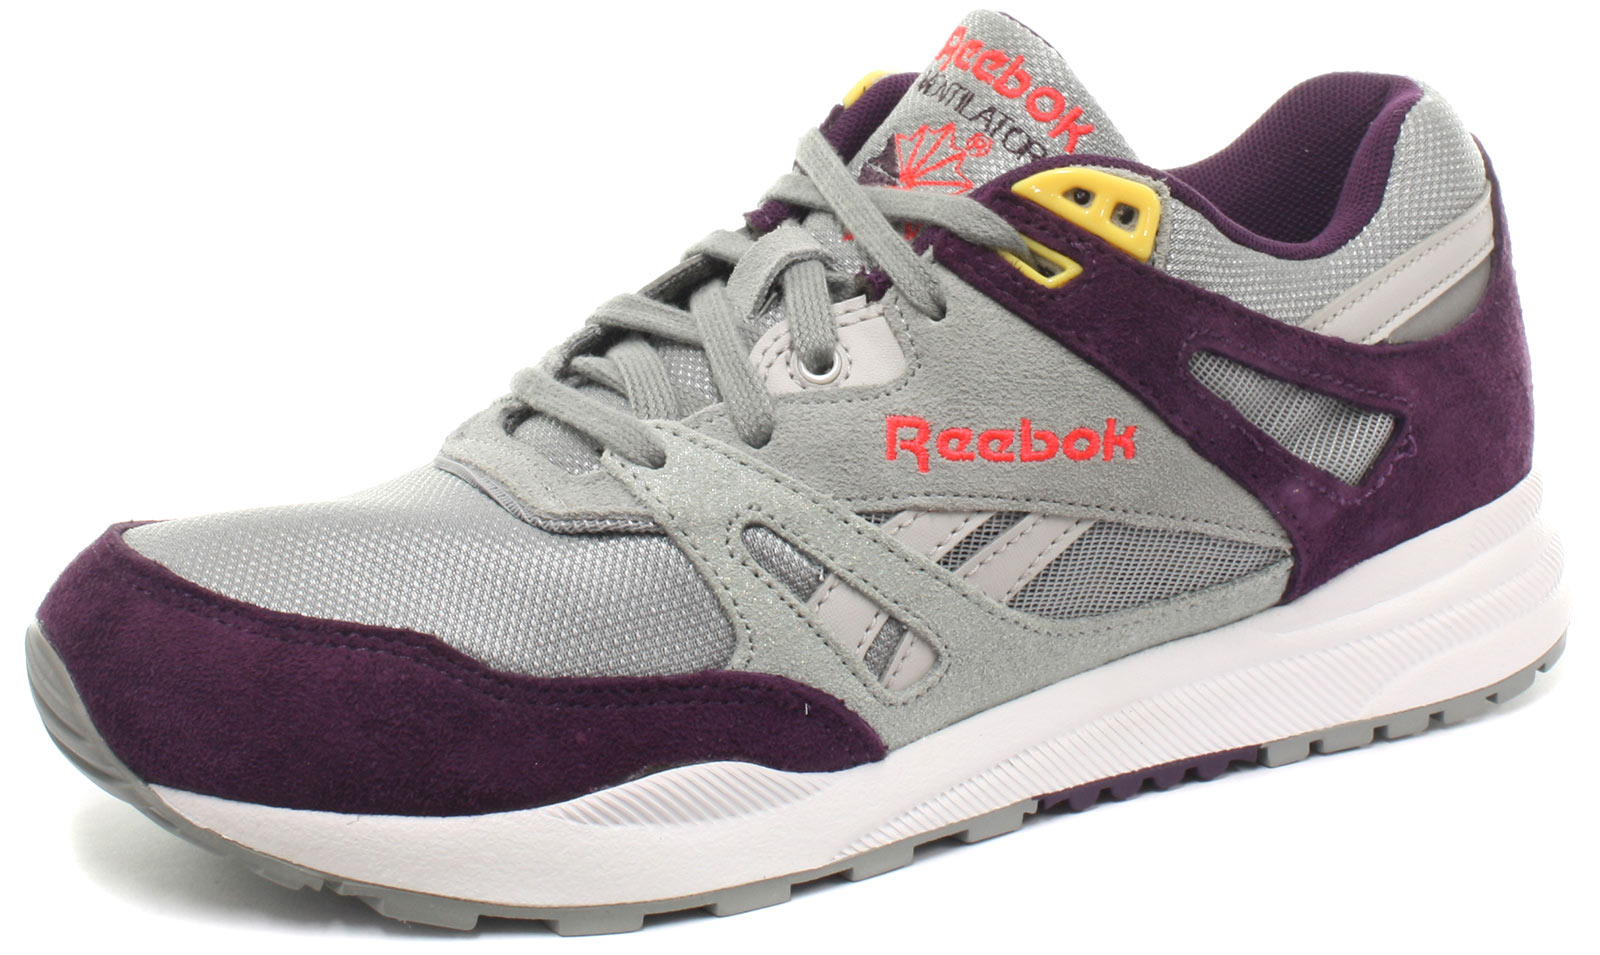 Details about Reebok Classic Ventilator Co-Op Womens Suede Retro Trainers  ALL SIZES 479ebf6bc